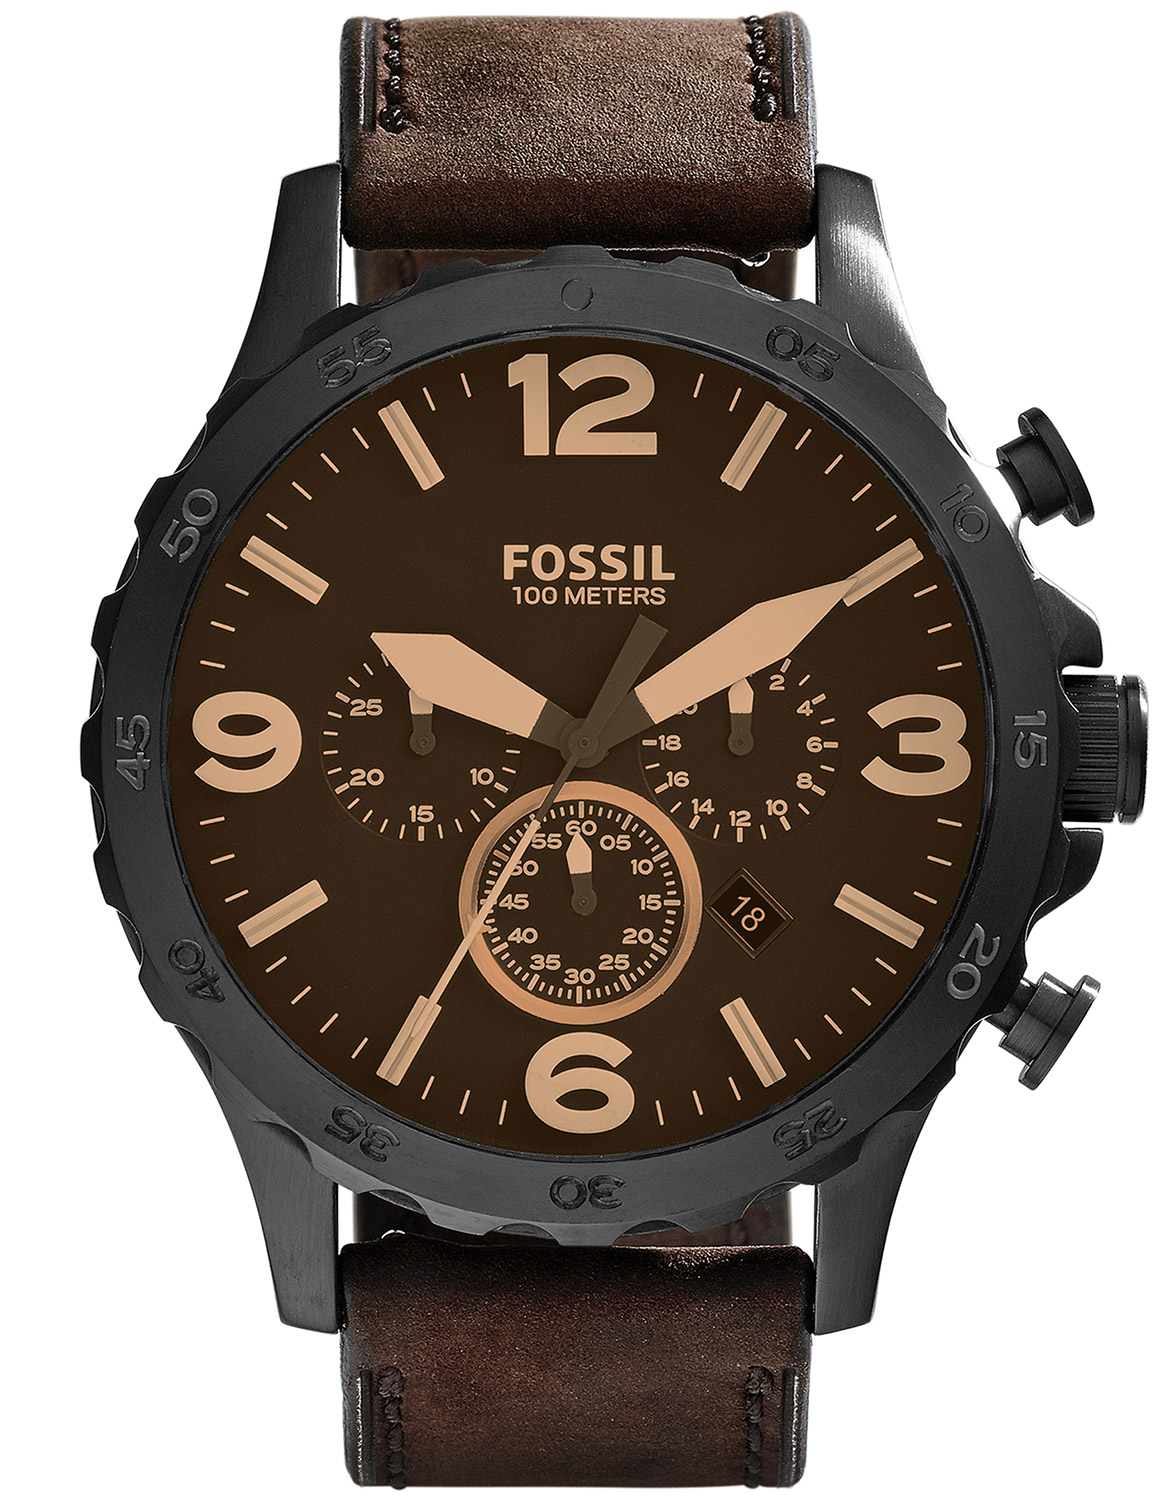 fossil nate herren chronograph jr1487 uhrcenter uhren shop. Black Bedroom Furniture Sets. Home Design Ideas